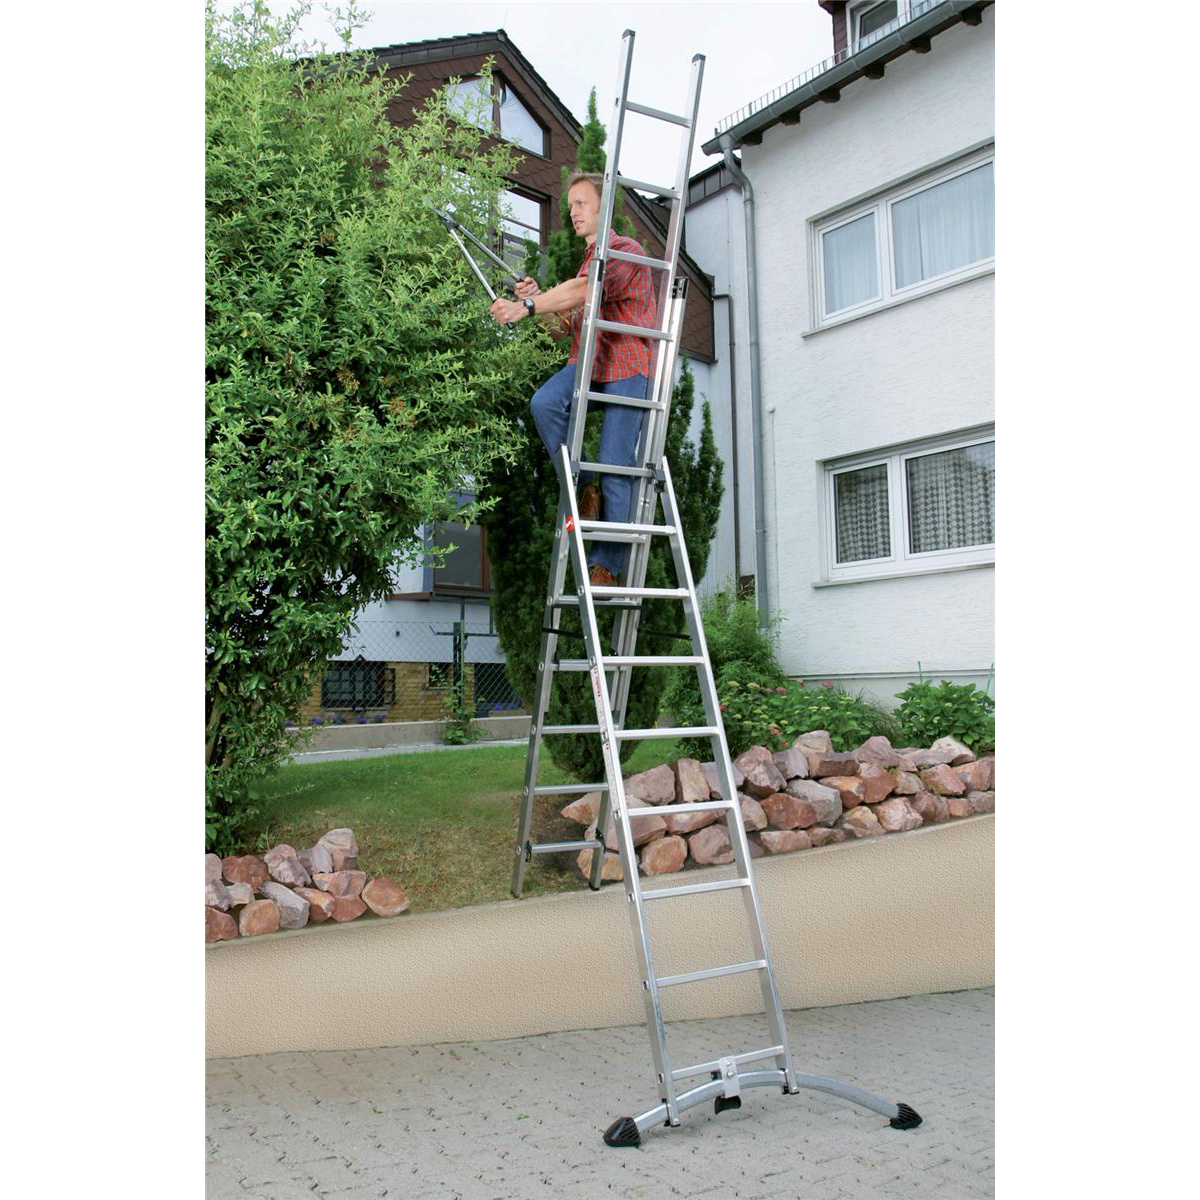 Combi Ladder 3 Section Capacity 150kg Rungs 3x12 for H9.25m 29.2kg Aluminium